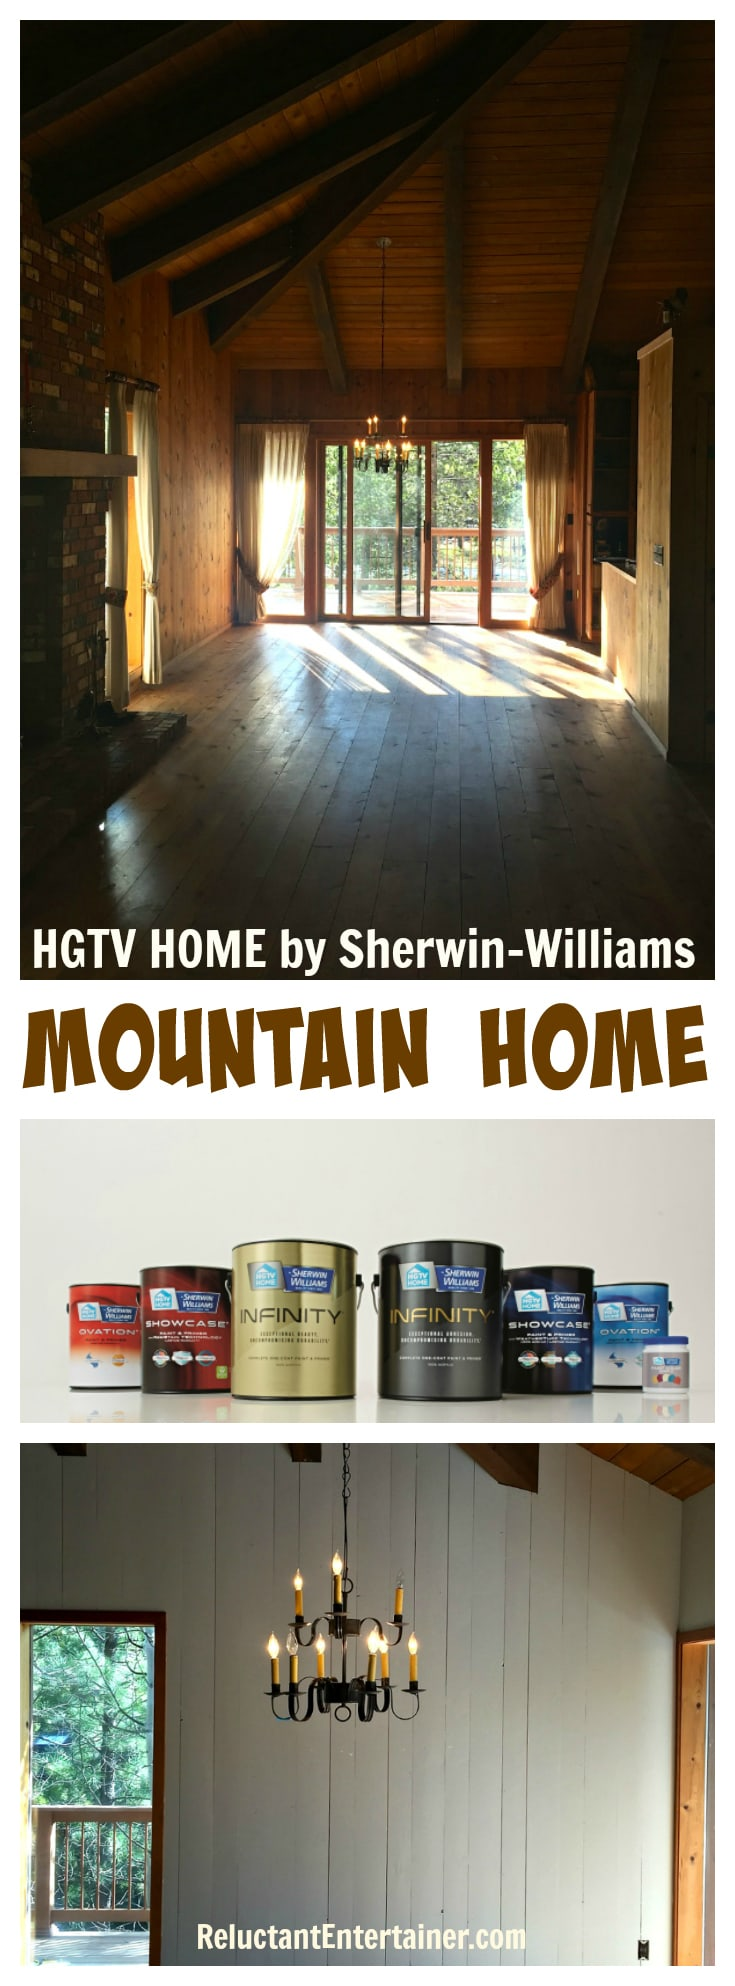 HGTV HOME by Sherwin-Williams Paint for #MountainHome